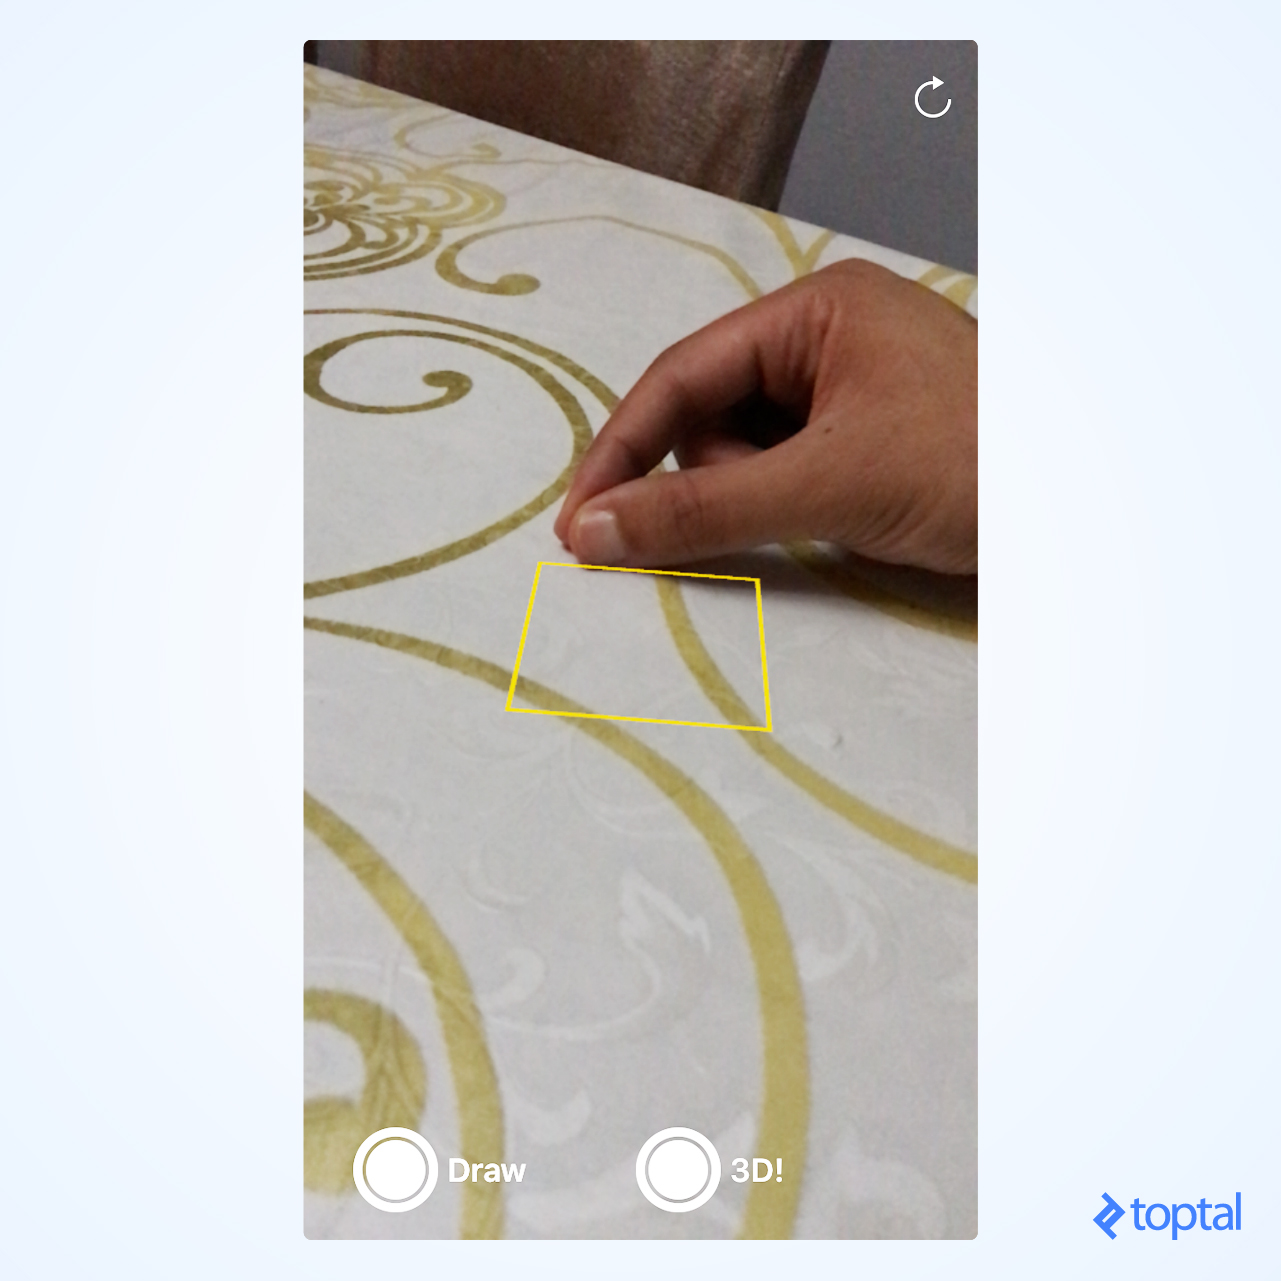 Focus square projected on a table using Apple ARKit